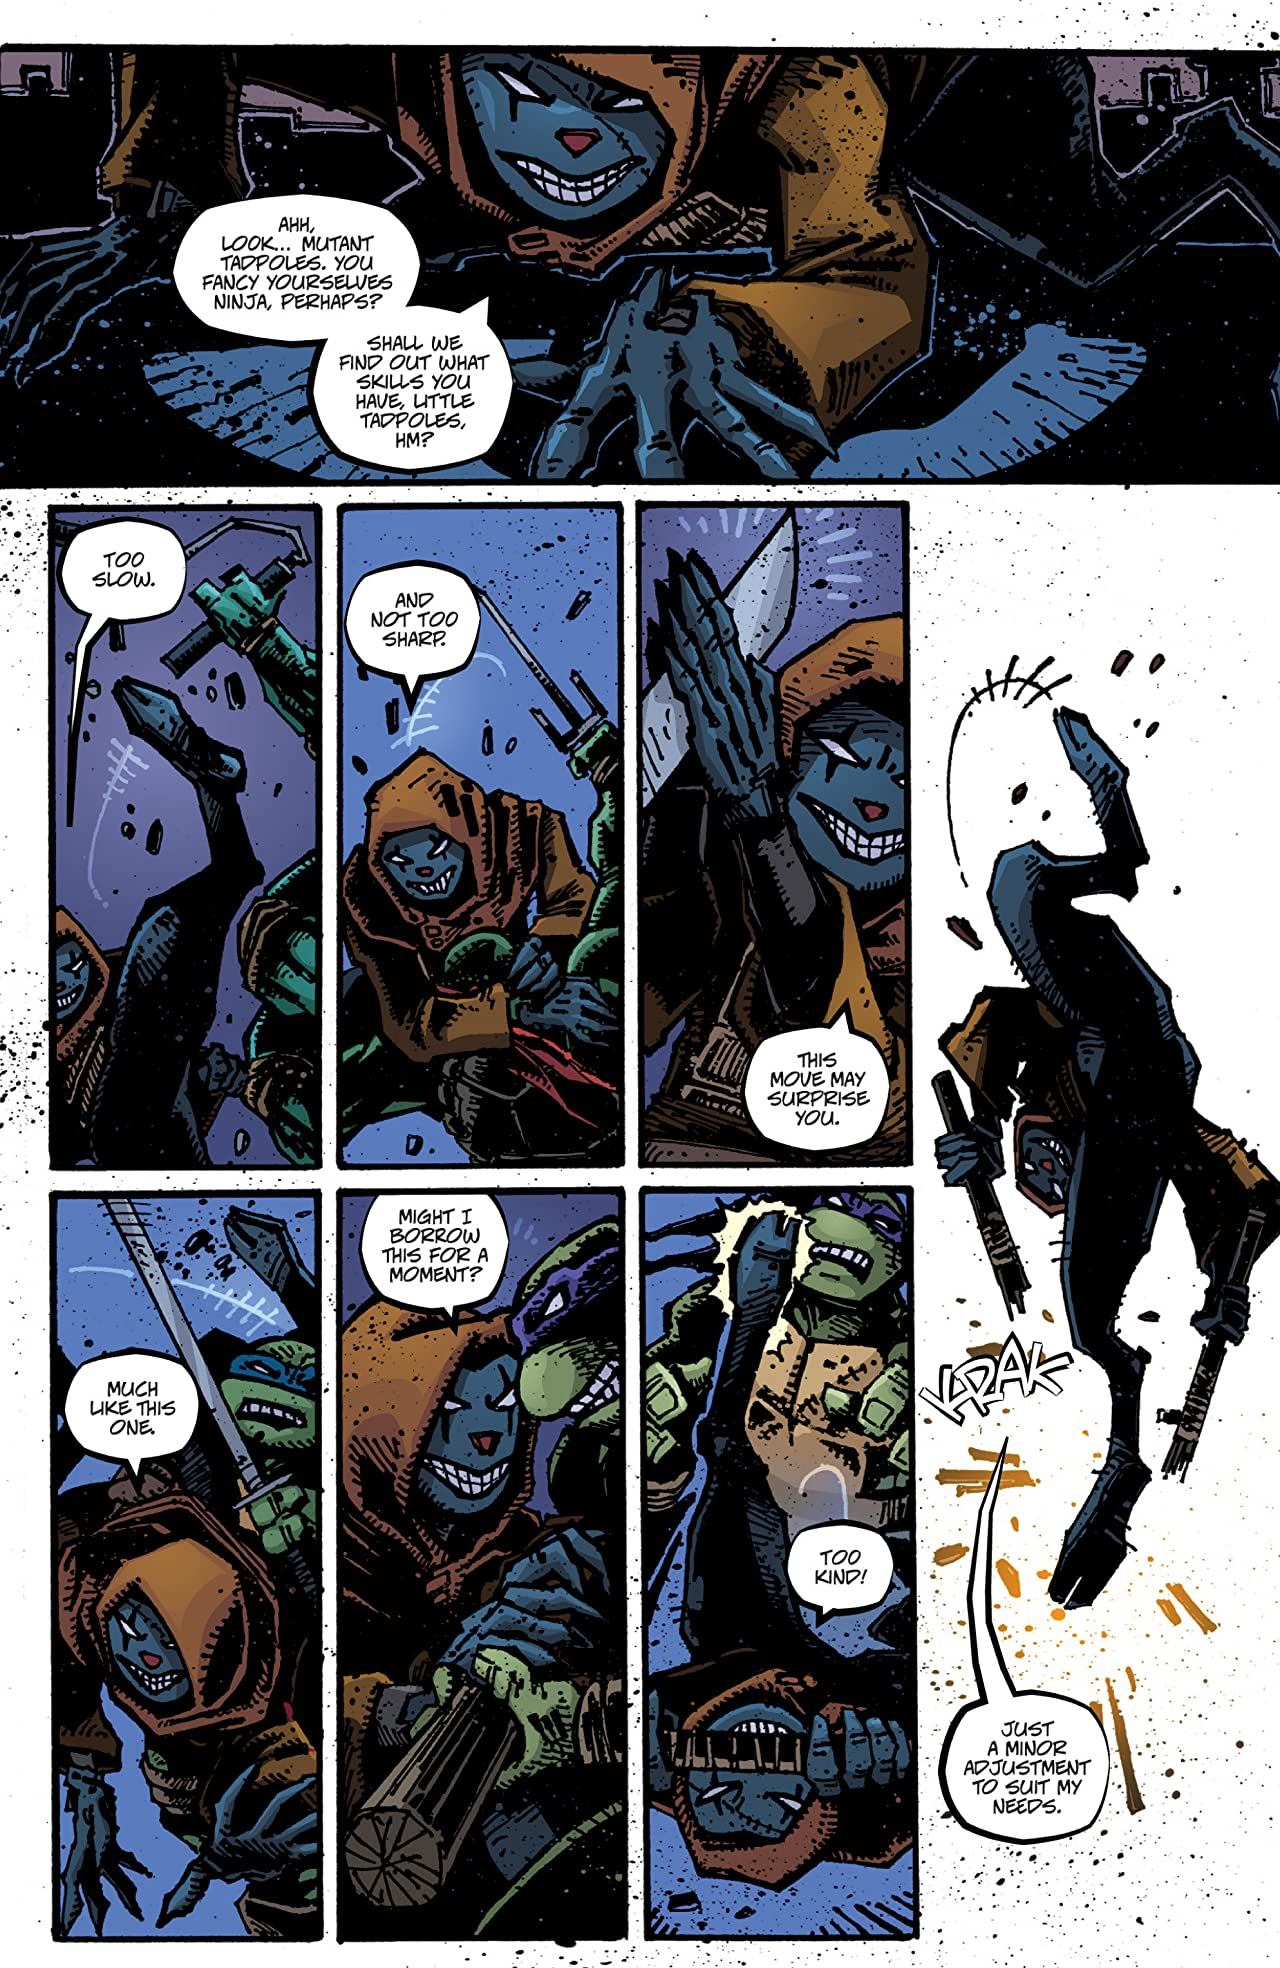 Teenage Mutant Ninja Turtles Vol. 6: City Fall, Part 1